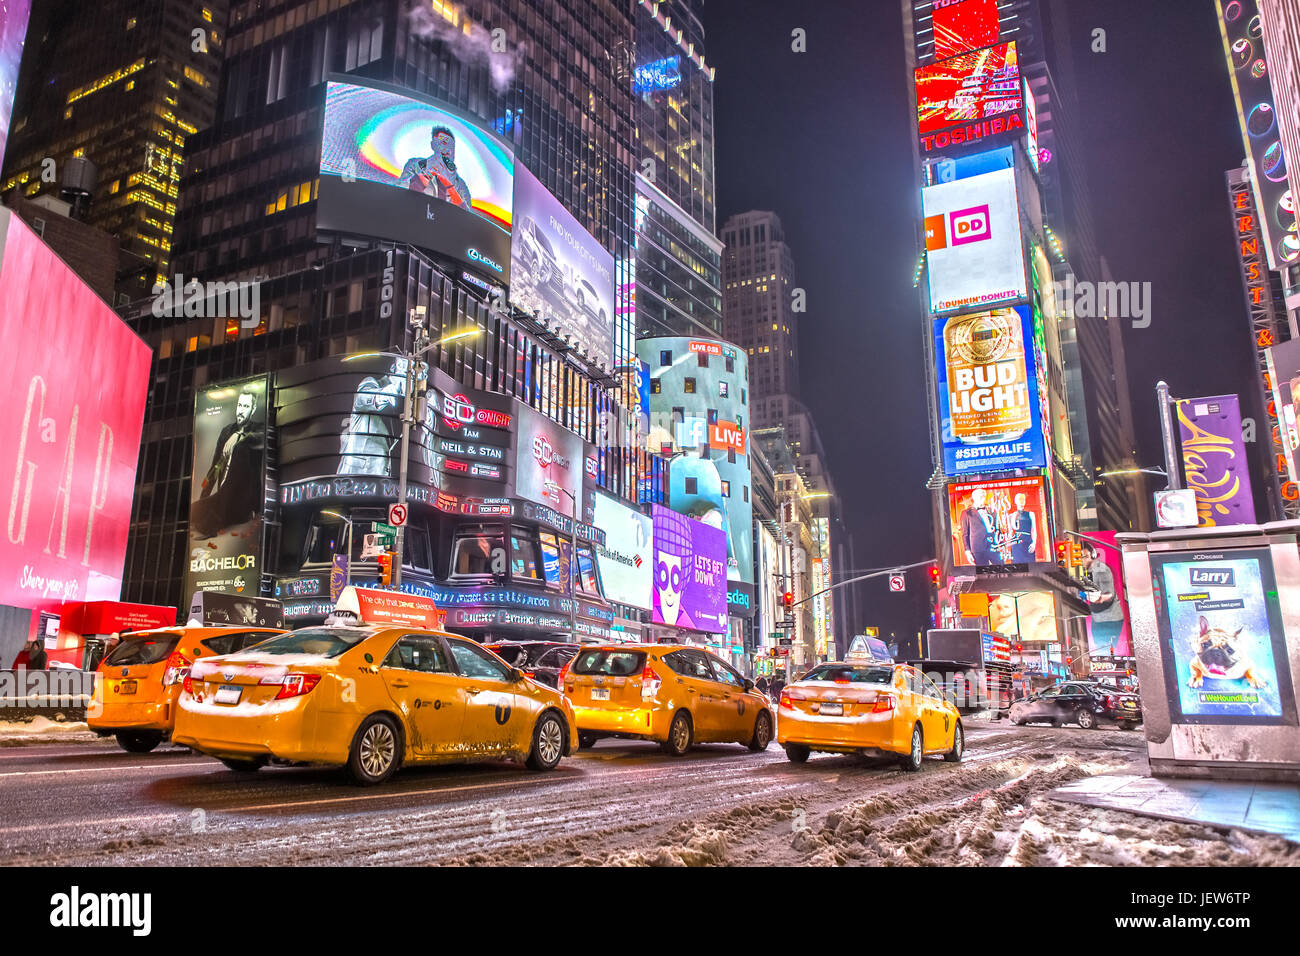 Yellow Cabs at the Times Square in New York - Stock Image